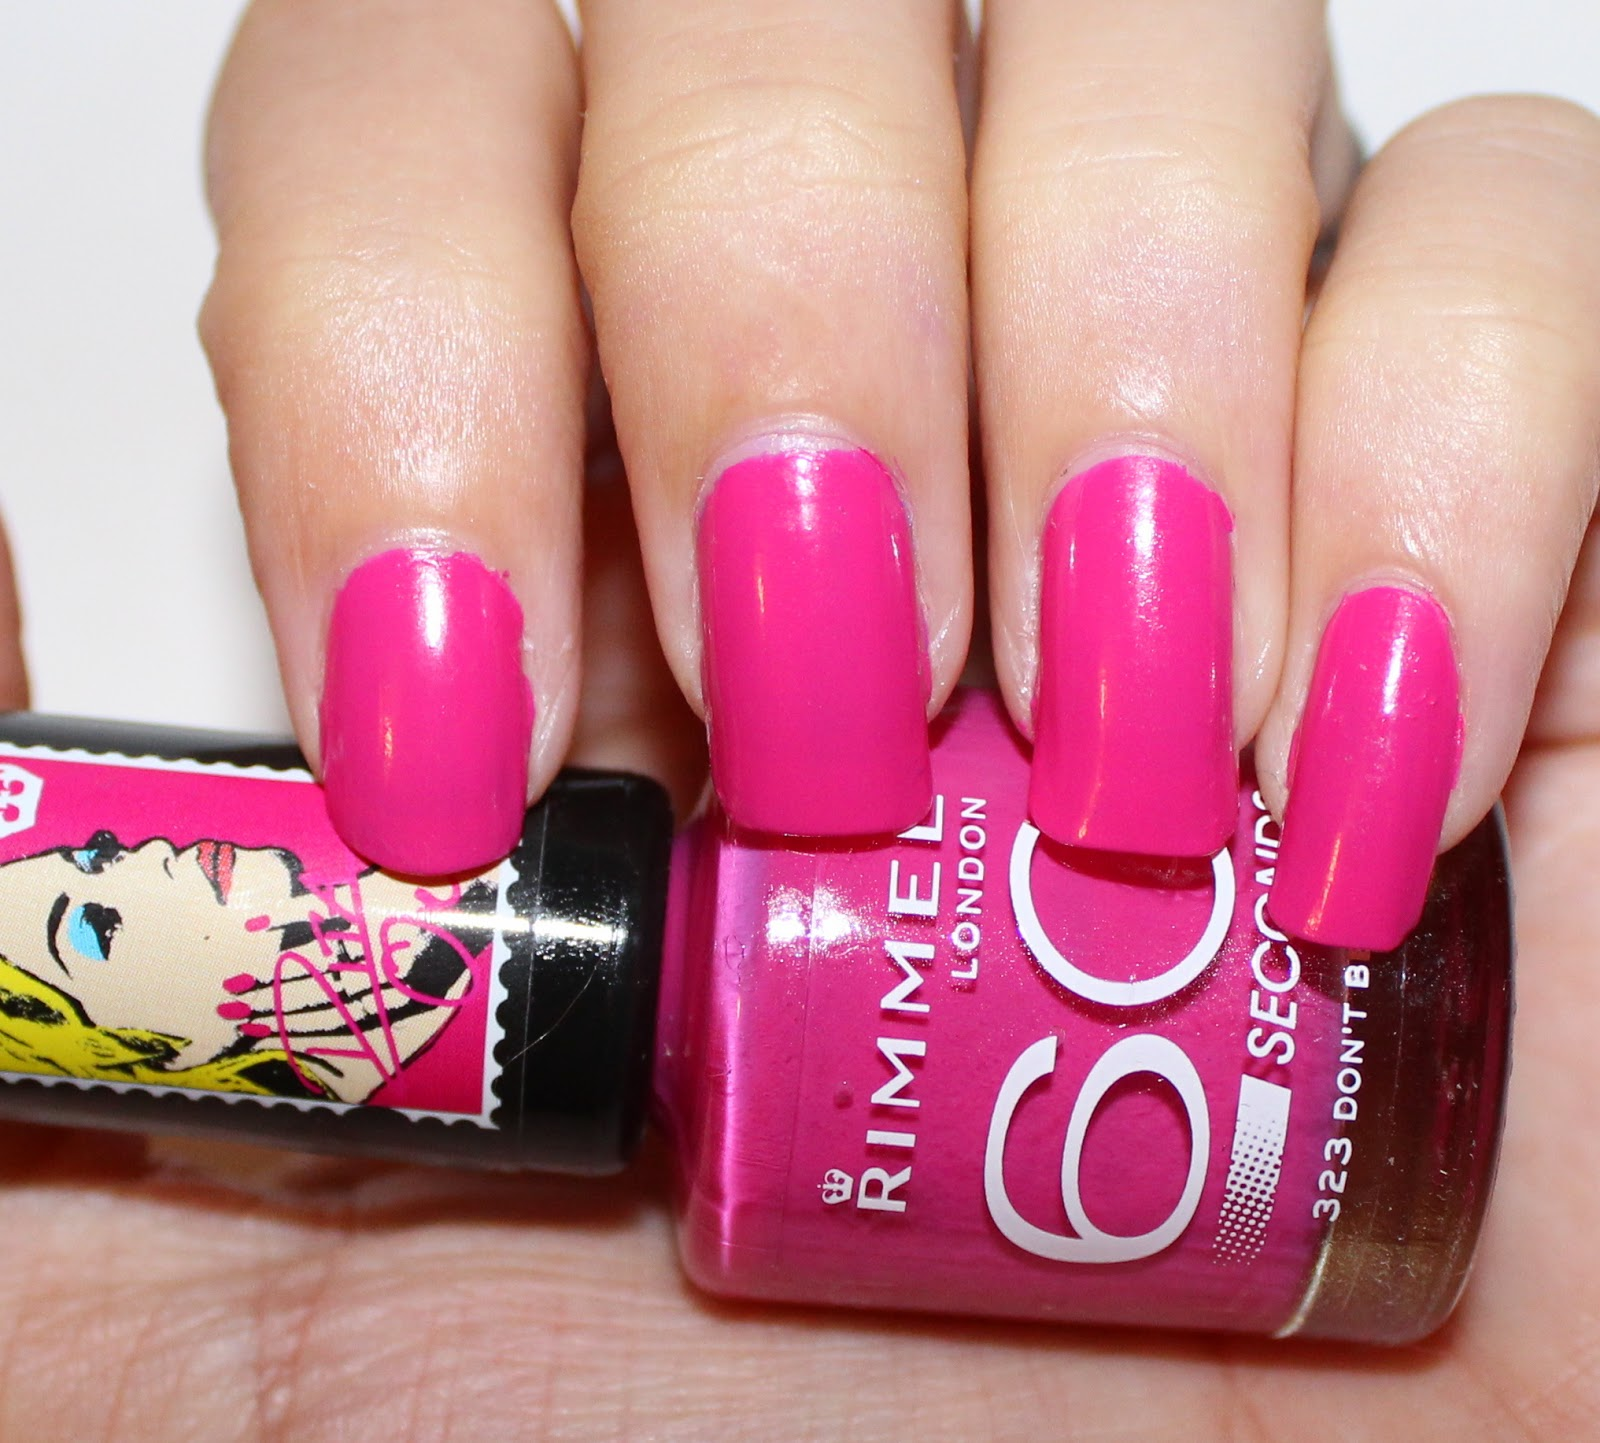 Rimmel London x Rita Ora 60 Seconds Nail Polish in Don't Be Shy Swatch